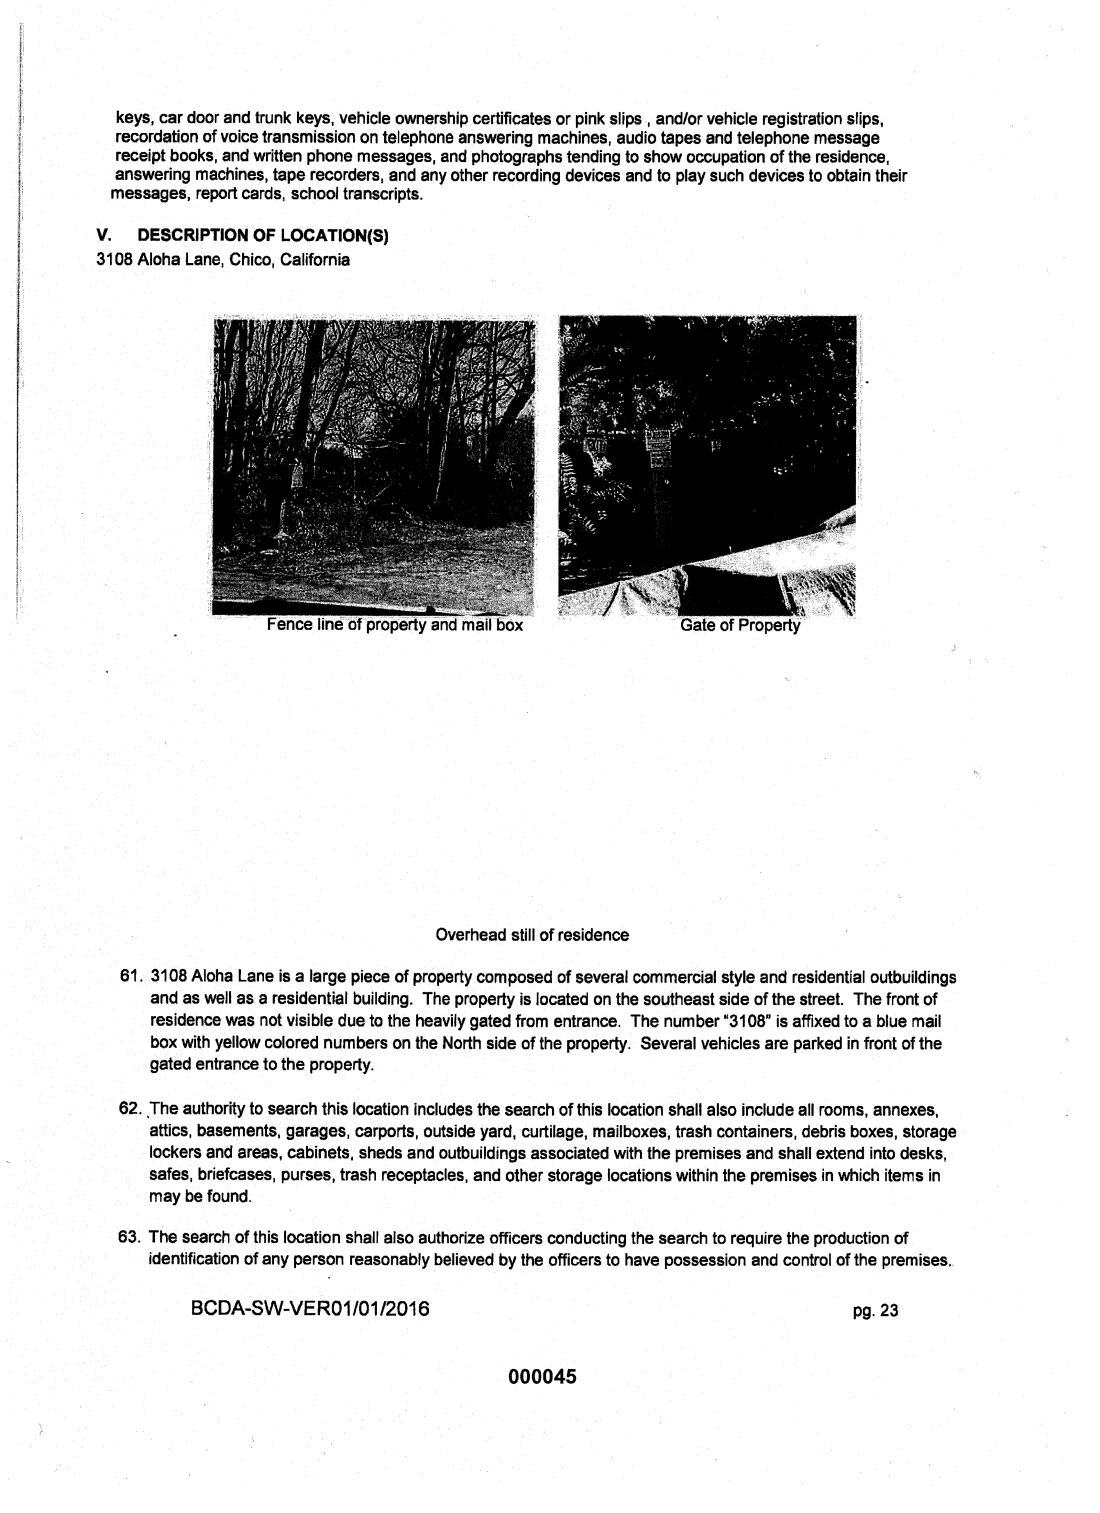 Statement of probable cause page 19